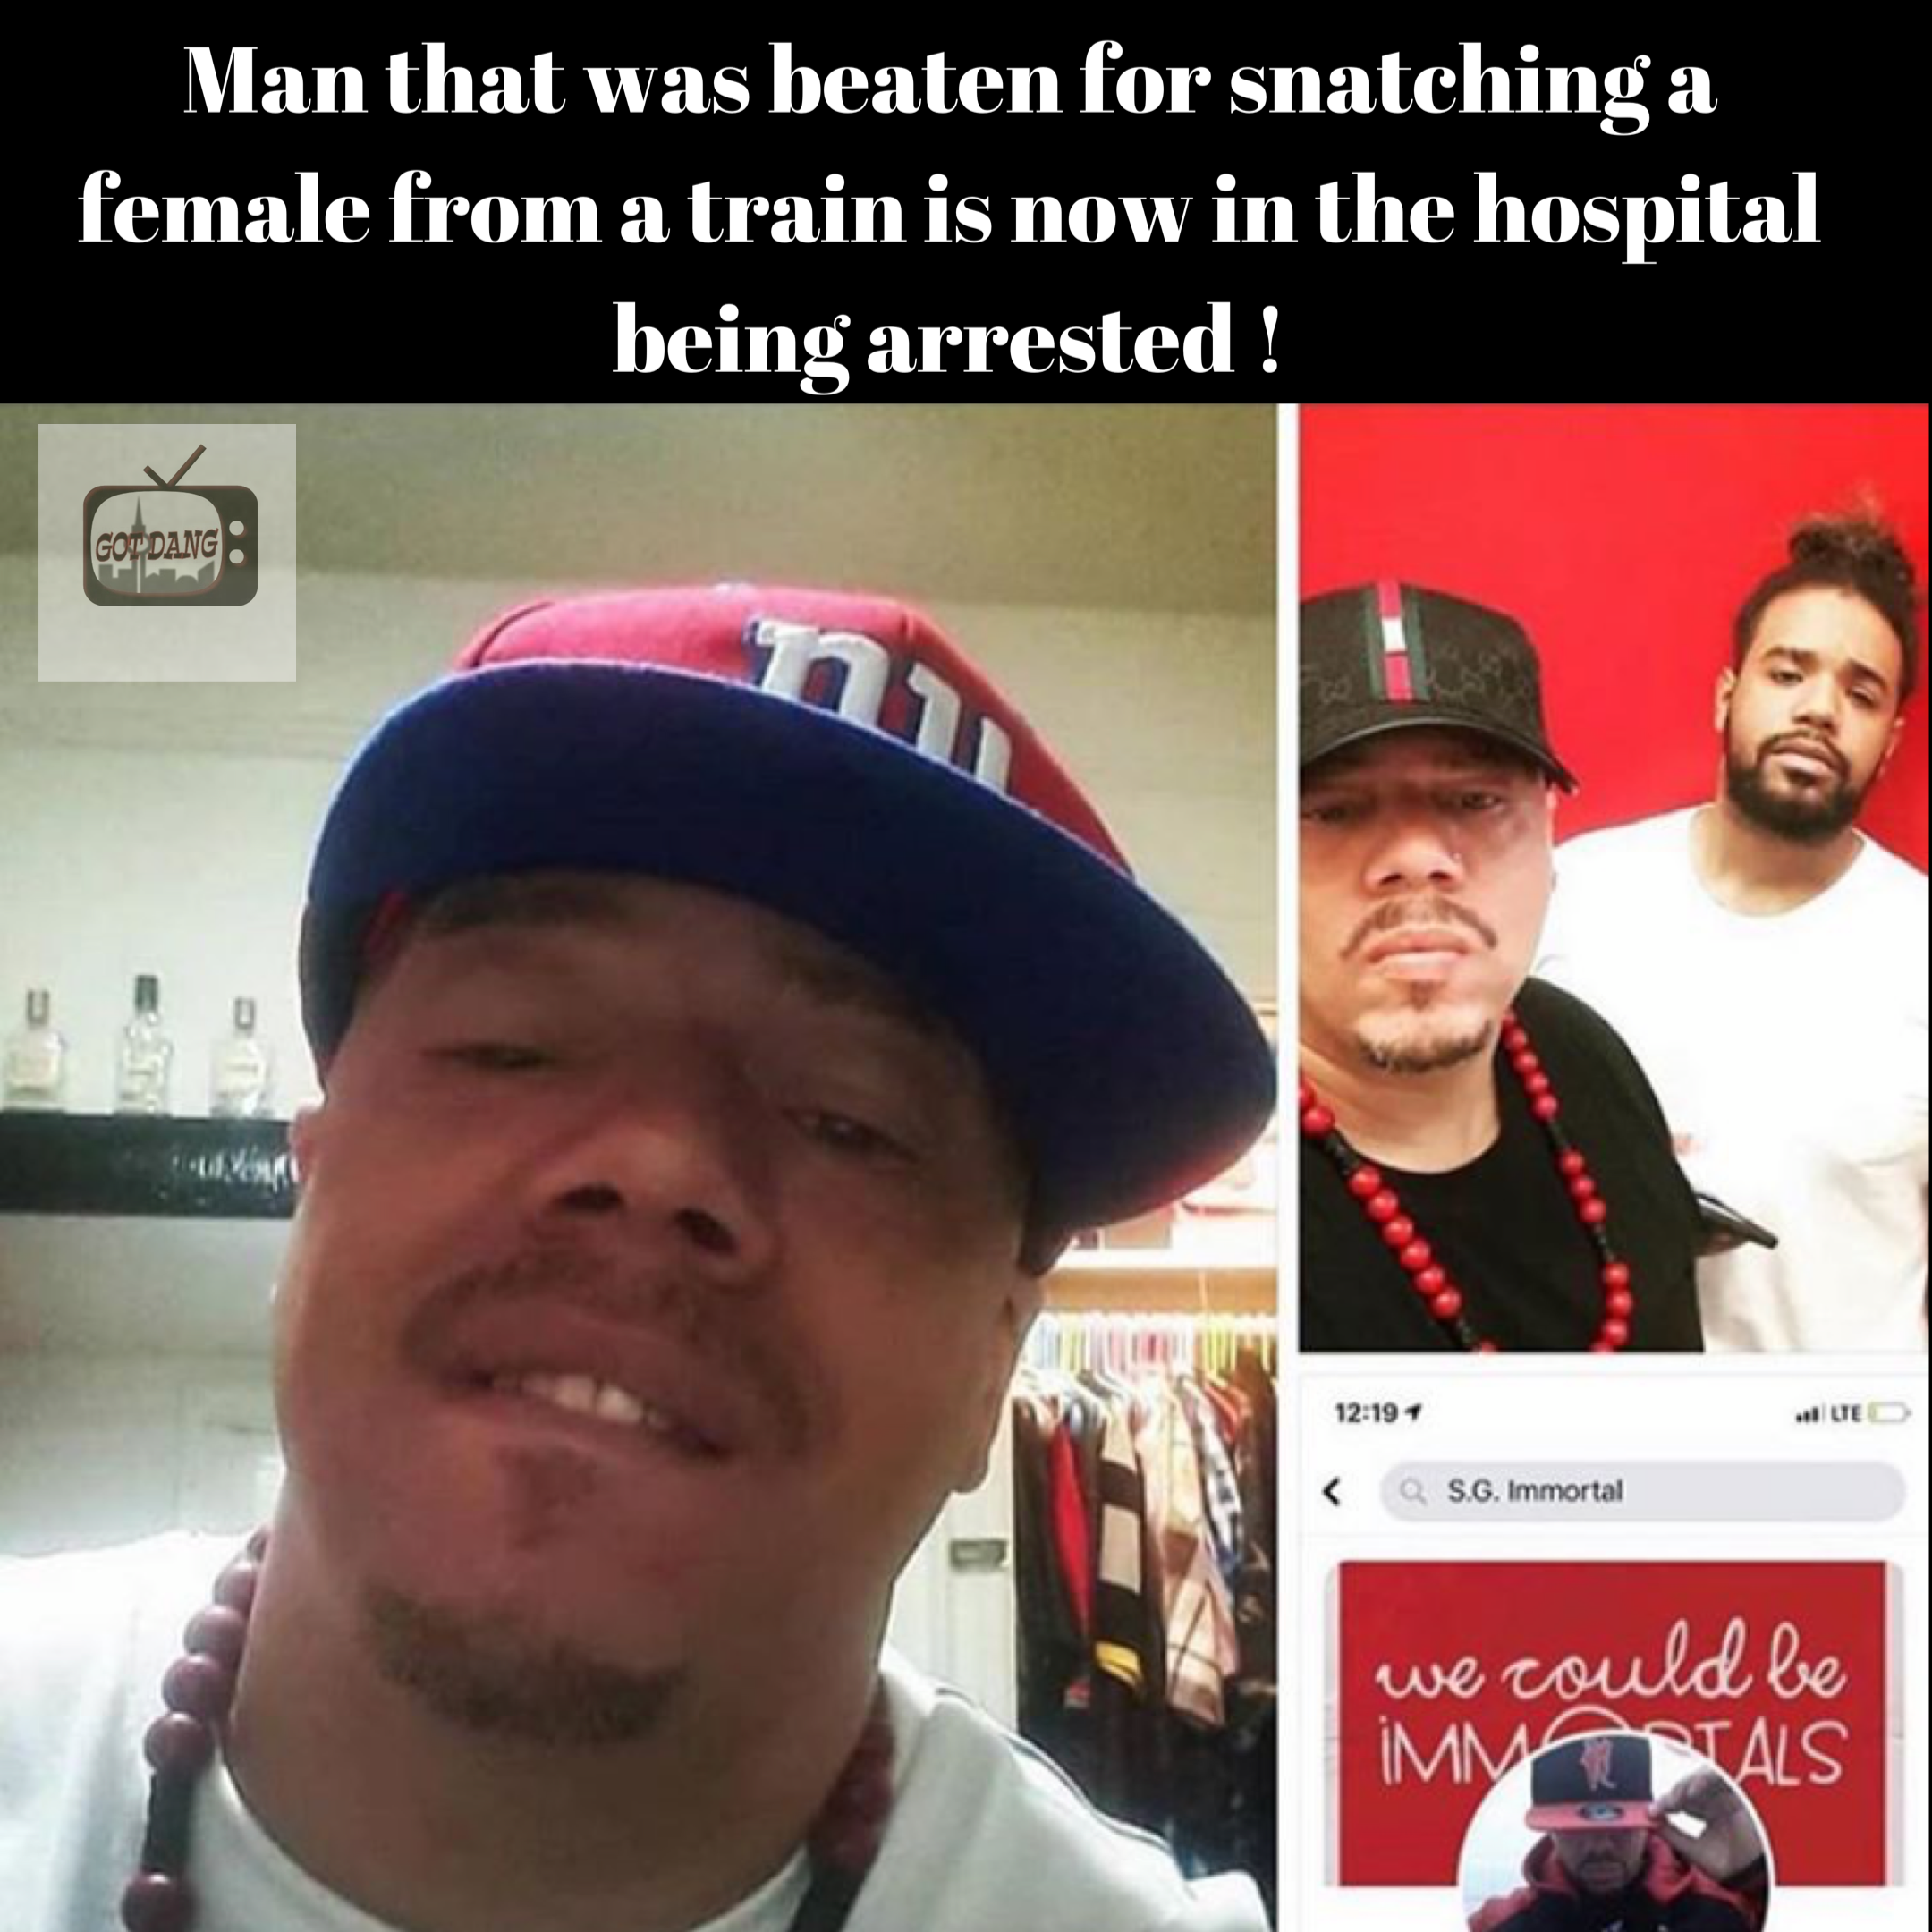 Guy who was beat for trying to snatch a female going to jail